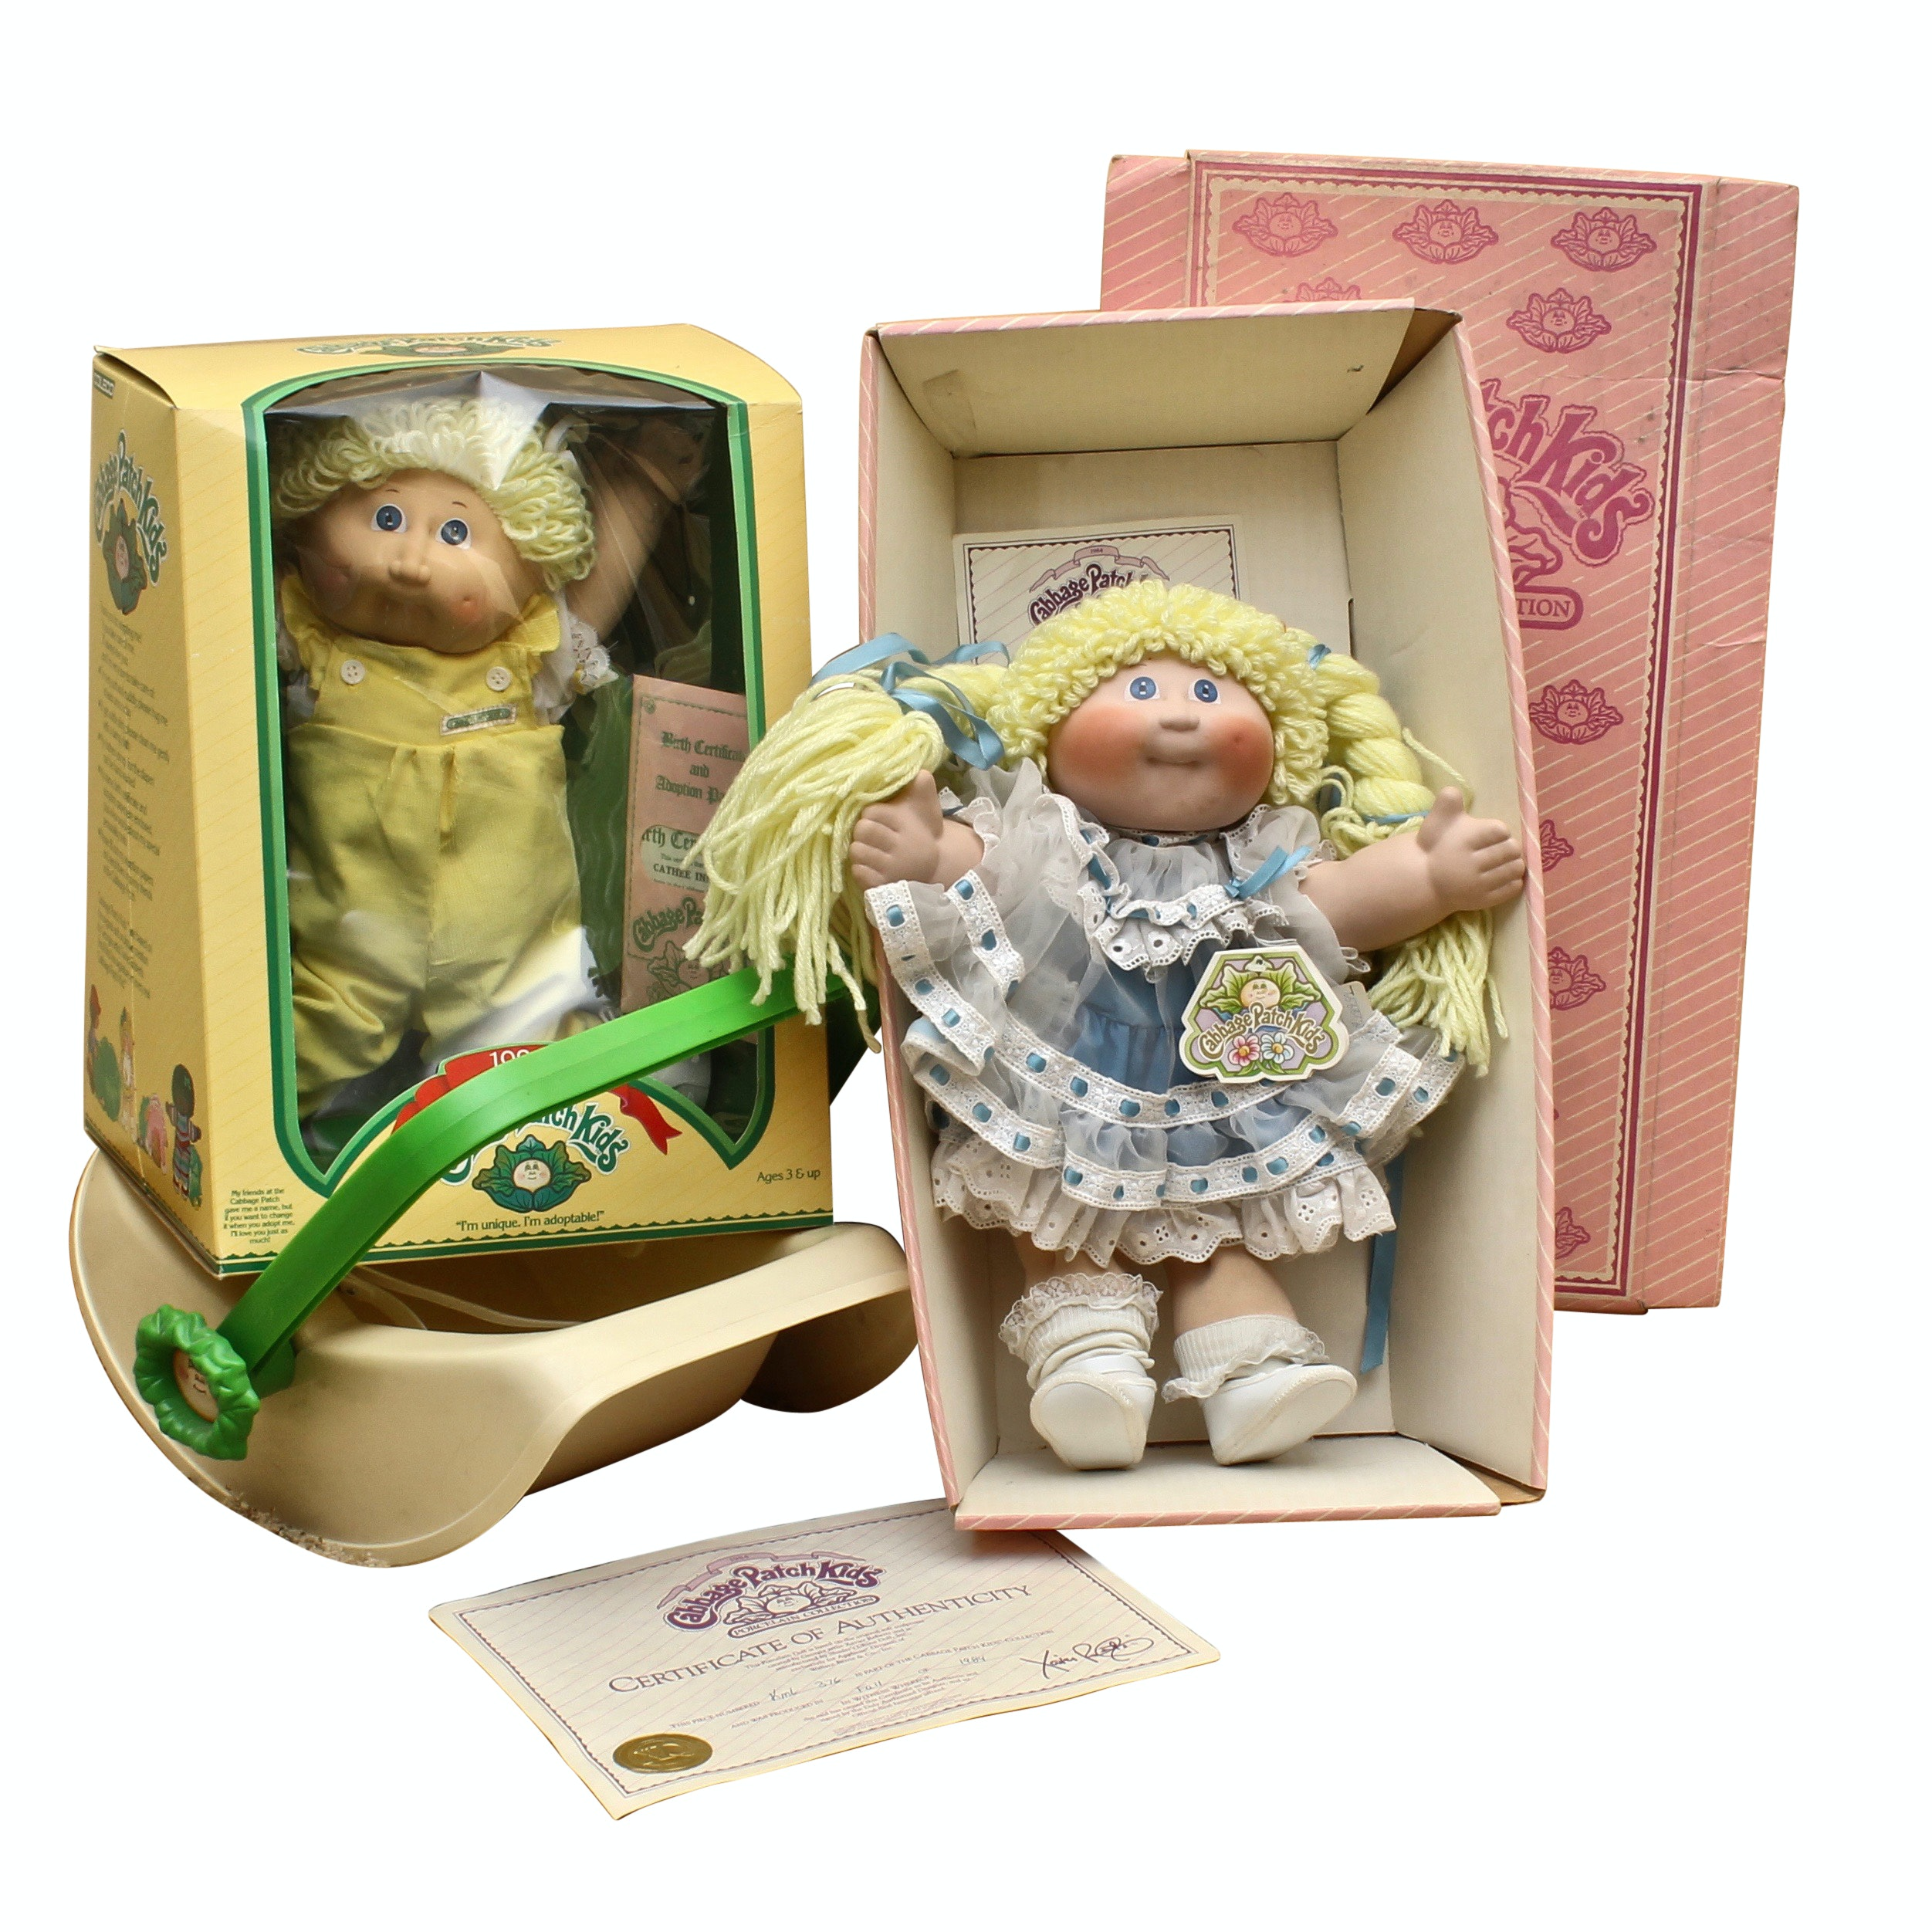 Vintage 1980s Porcelain Cabbage Patch Doll and Plush Cabbage Patch Baby